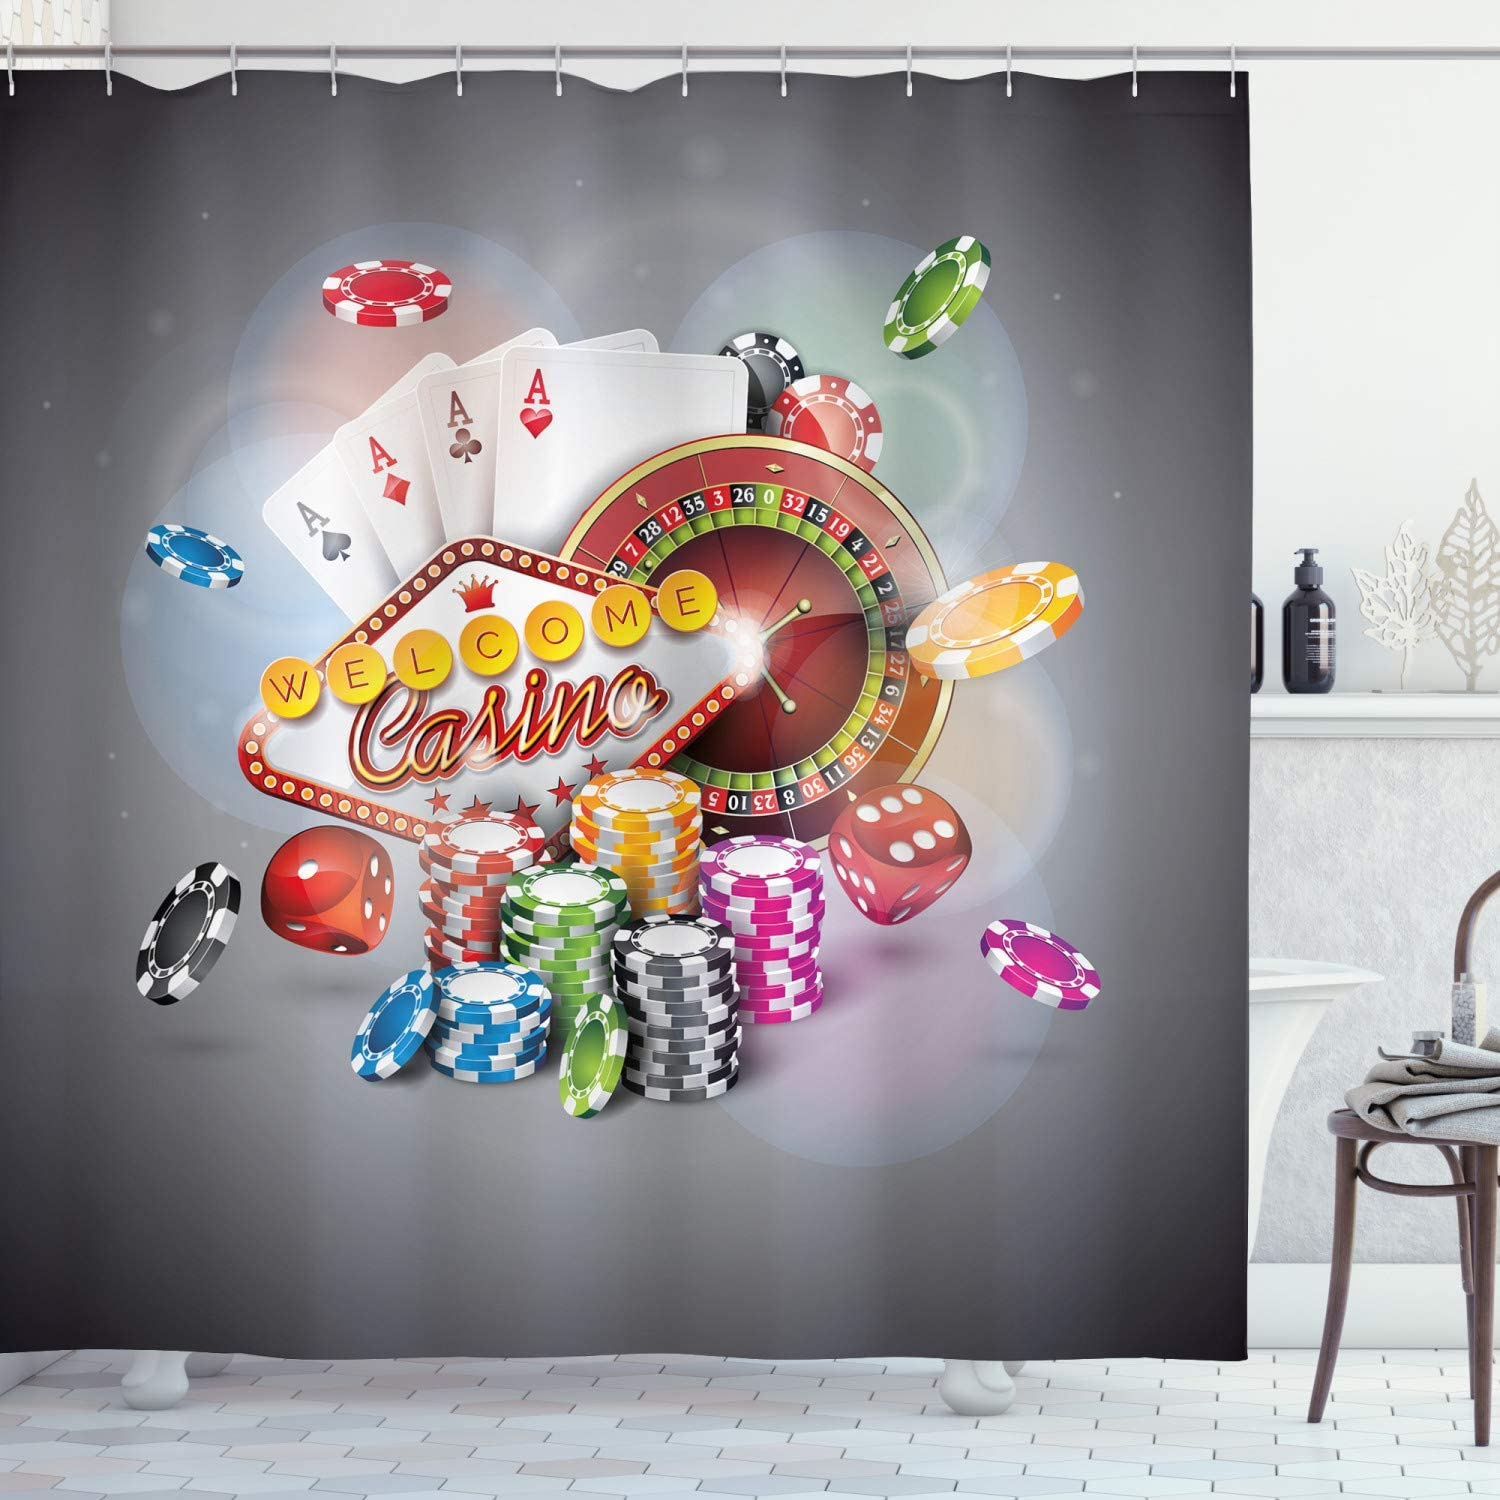 Ambesonne Poker Tournament Shower Curtain, Welcome to Casino Colorful Chips and Cards Dice and Roulette Win Jackpot, Cloth Fabric Bathroom Decor Set with Hooks, 70